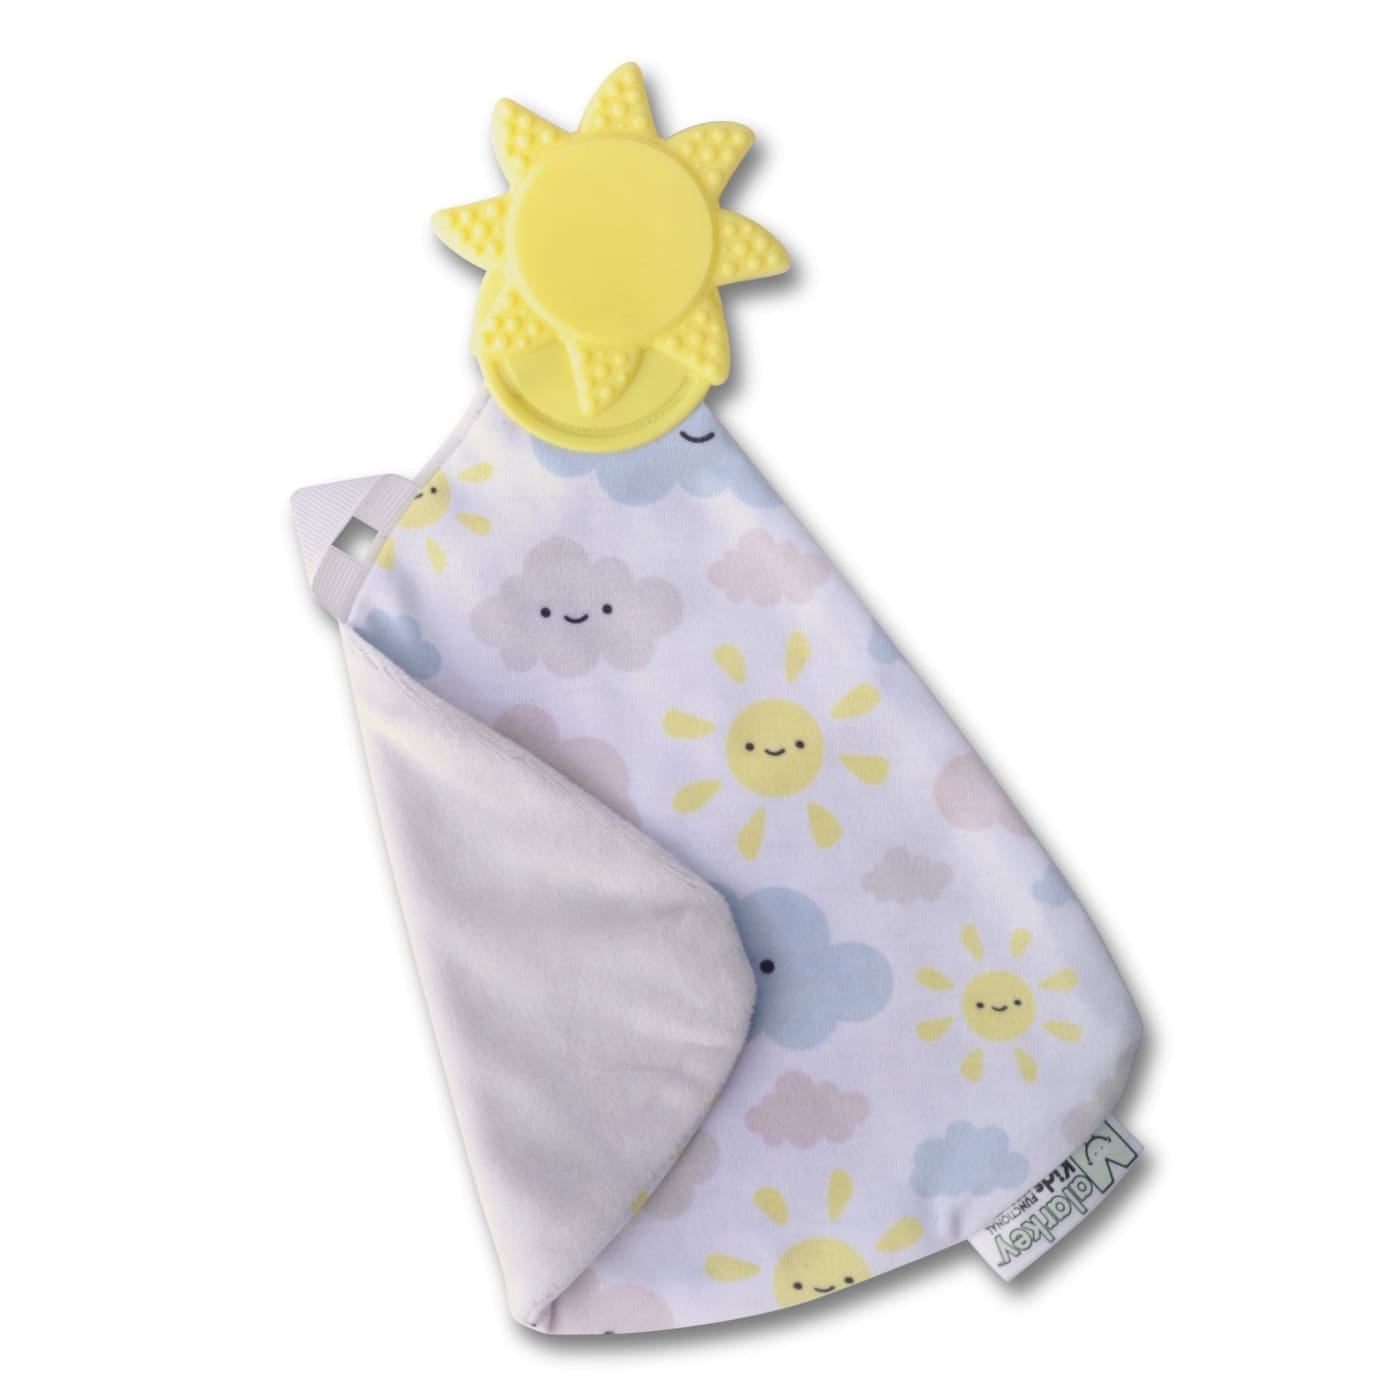 Malarkey Kids Munch-it Blanket - Sunshine - TOYS & PLAY - BLANKIES/COMFORTERS/RATTLES